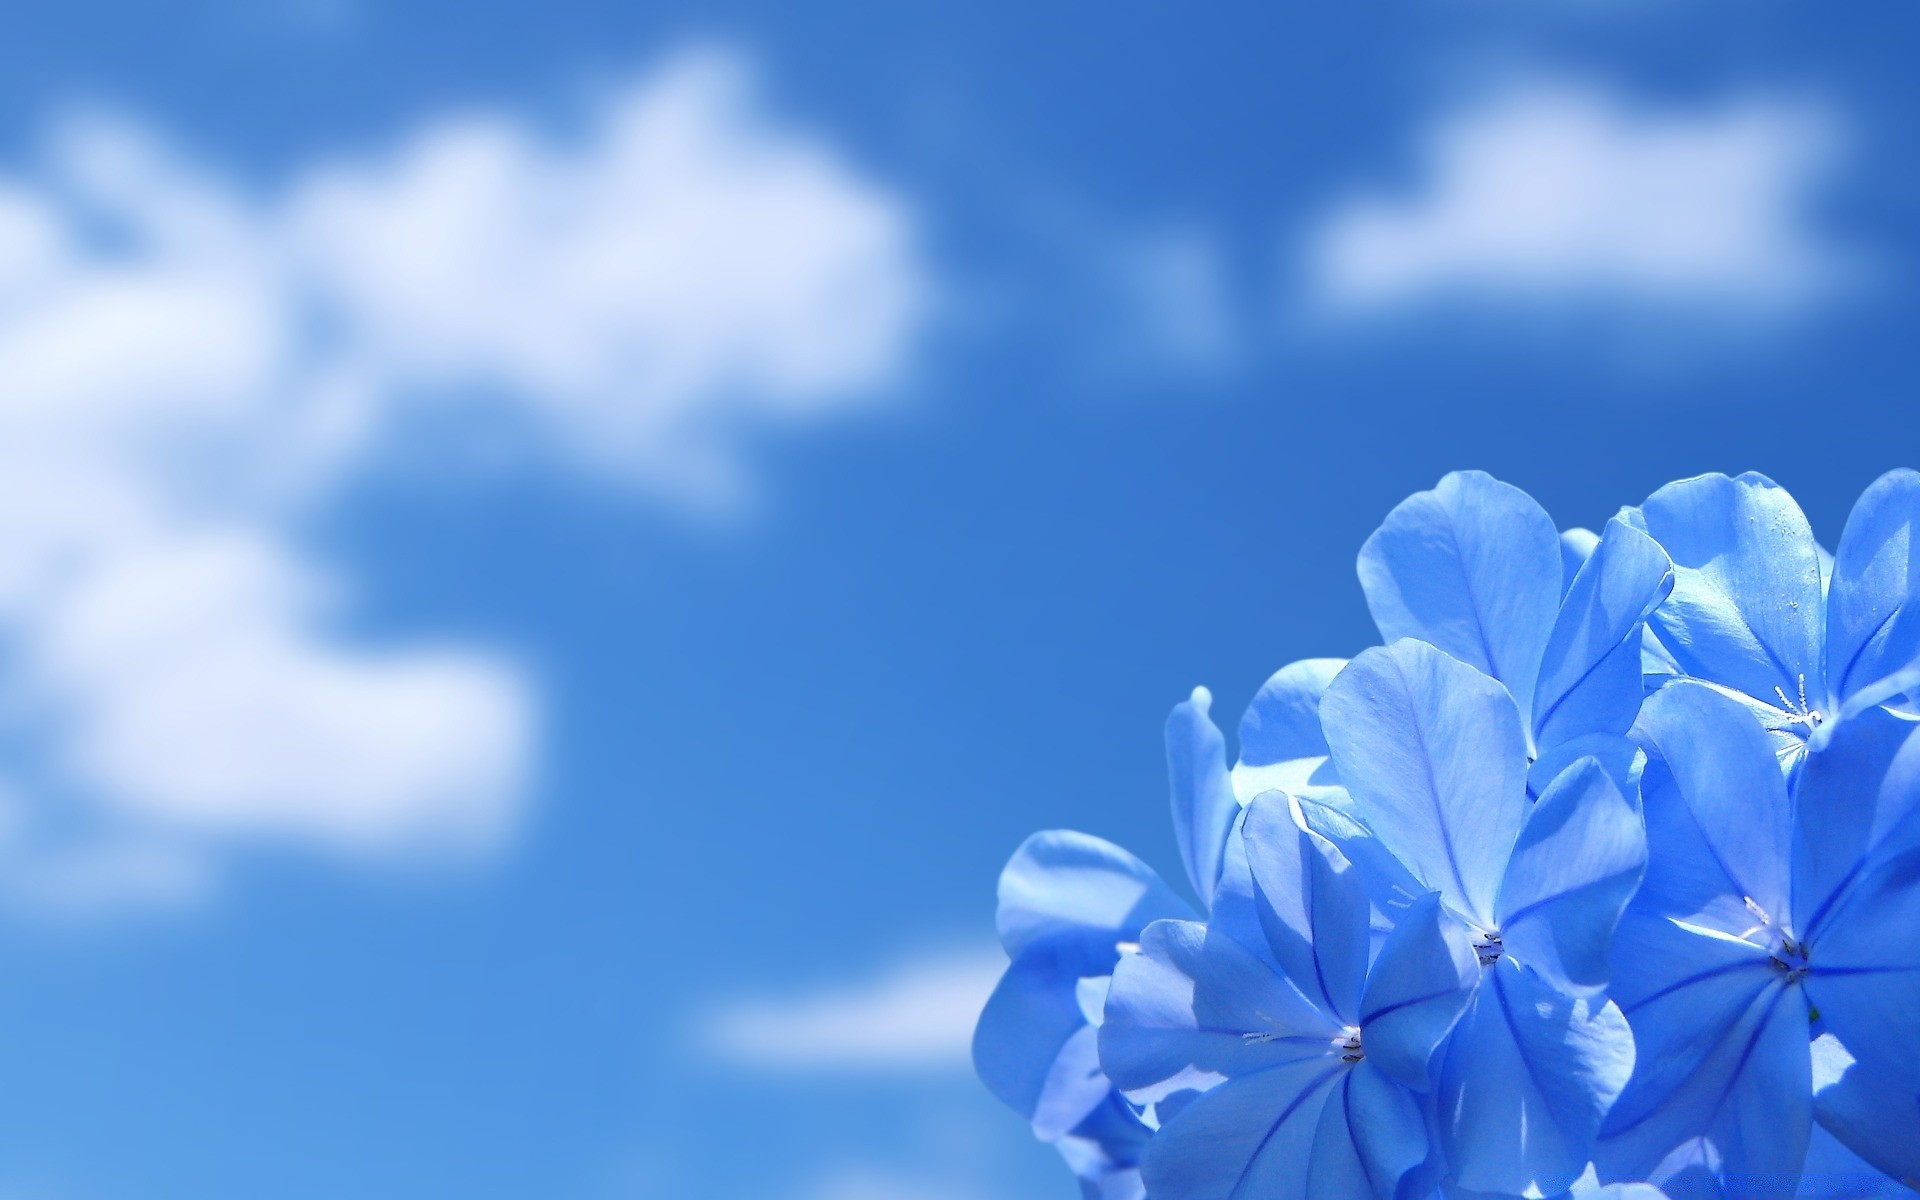 Blue Flowers Wallpapers  Full HD wallpaper search